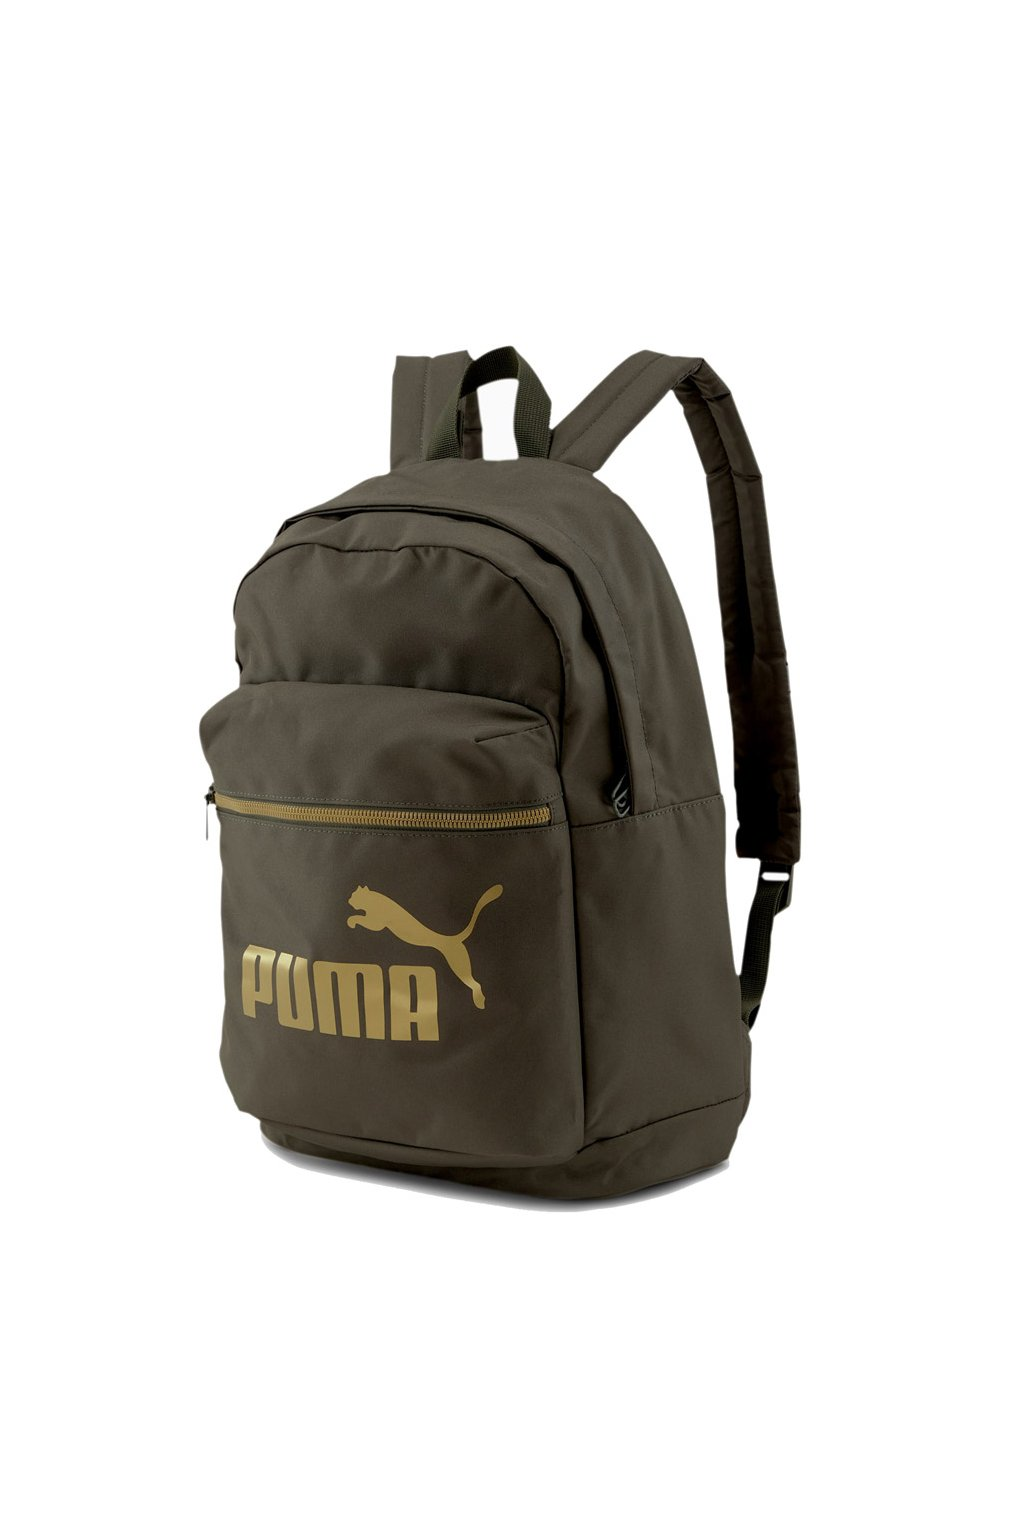 Batoh Puma WMN Core Base College Bag zelené 077374 03